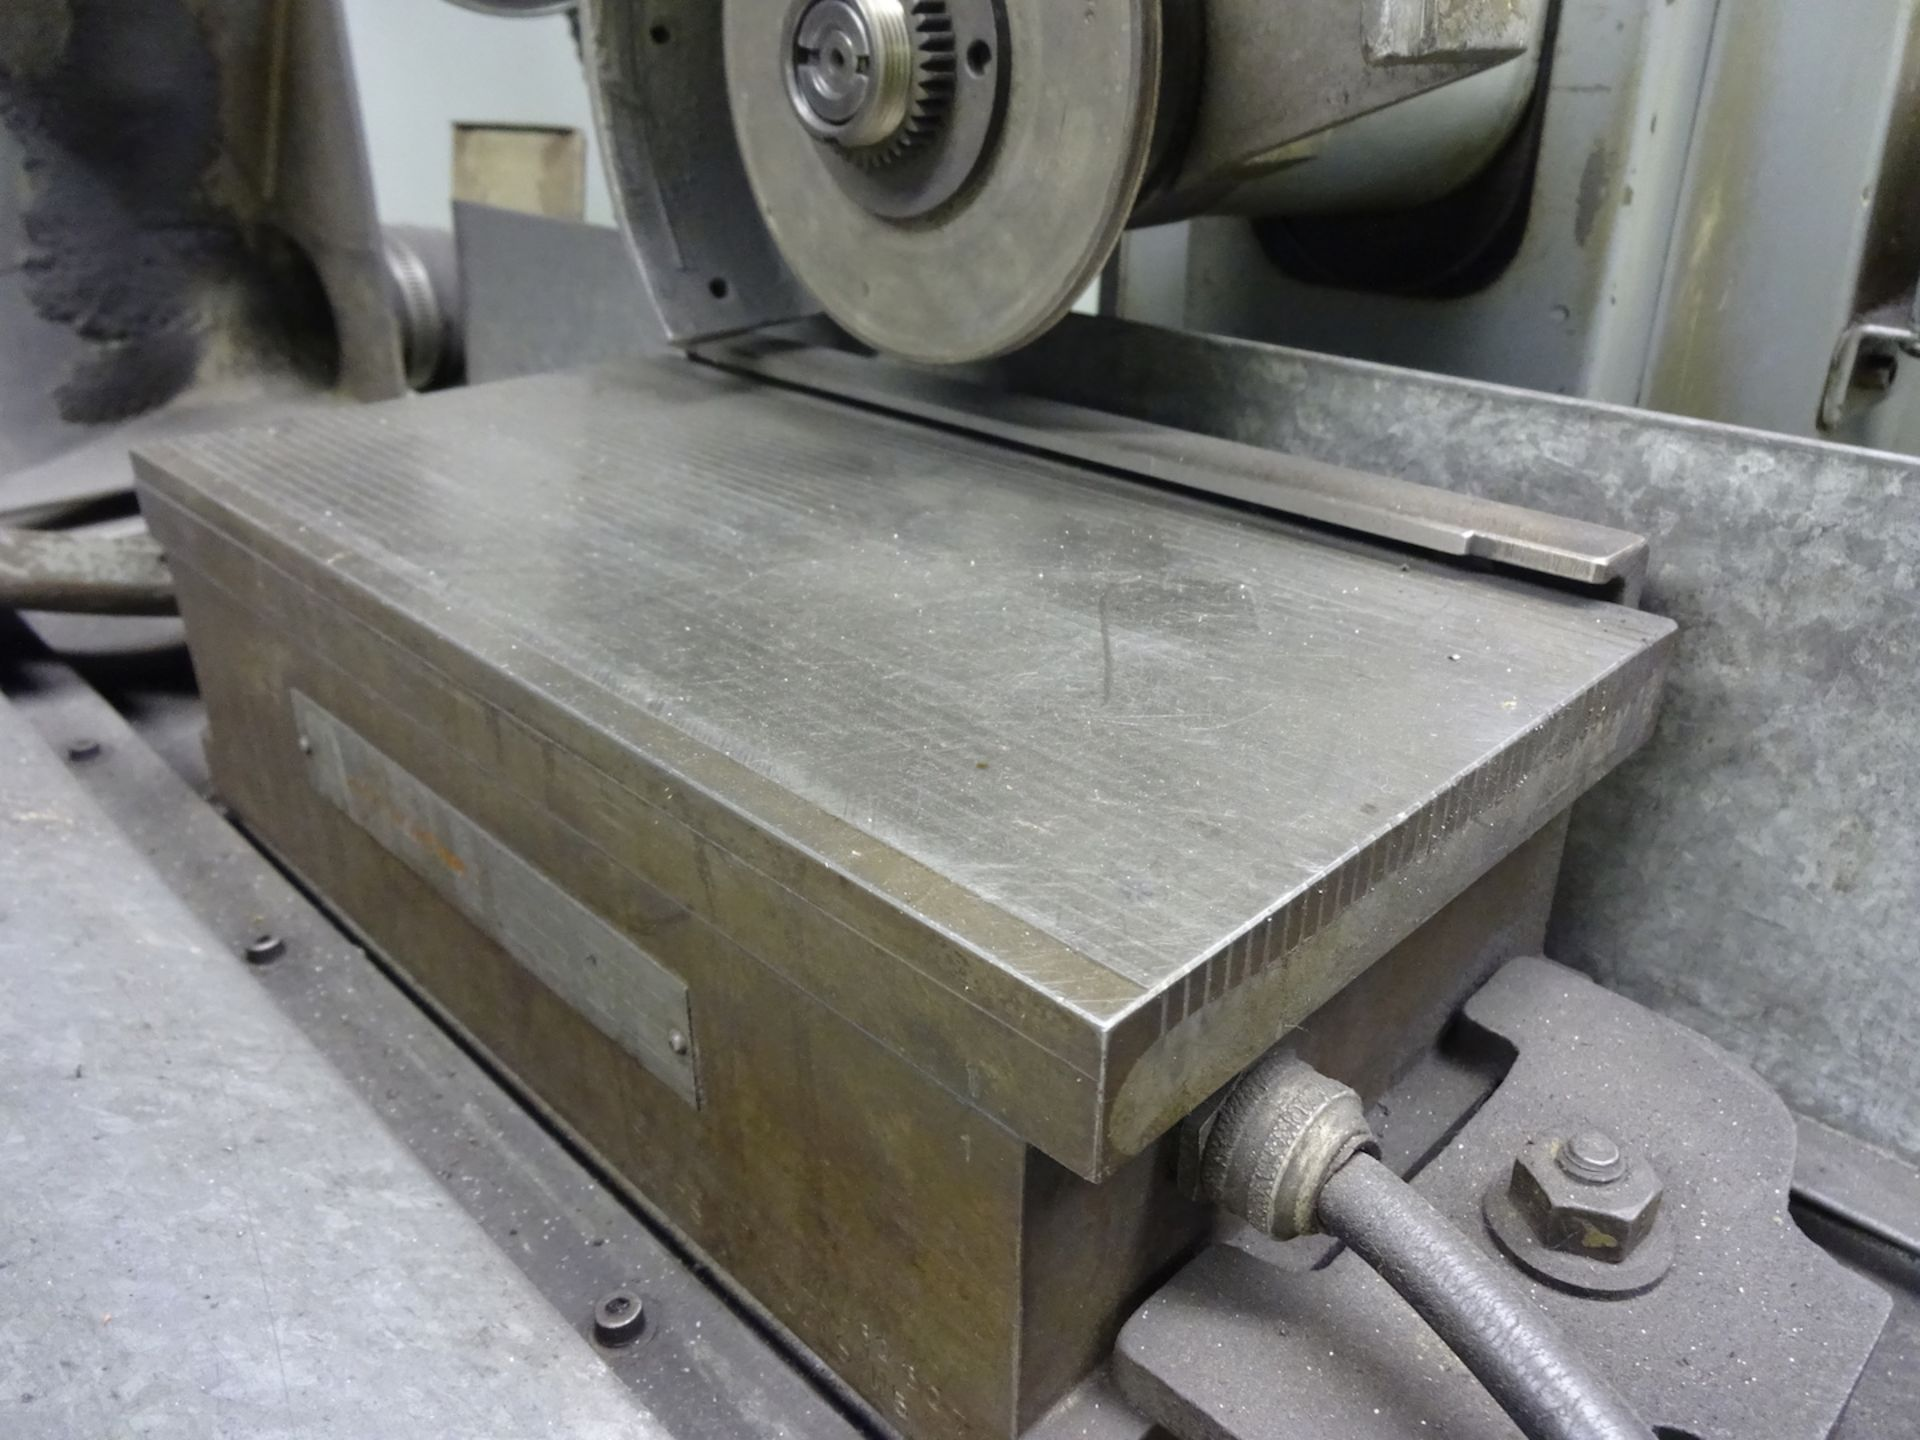 Lot 124 - Boyar Schultz 6 in. x 12 in. Model 612 Deluxe Hand Feed Surface Grinder, S/N 16896, Electro-Matic